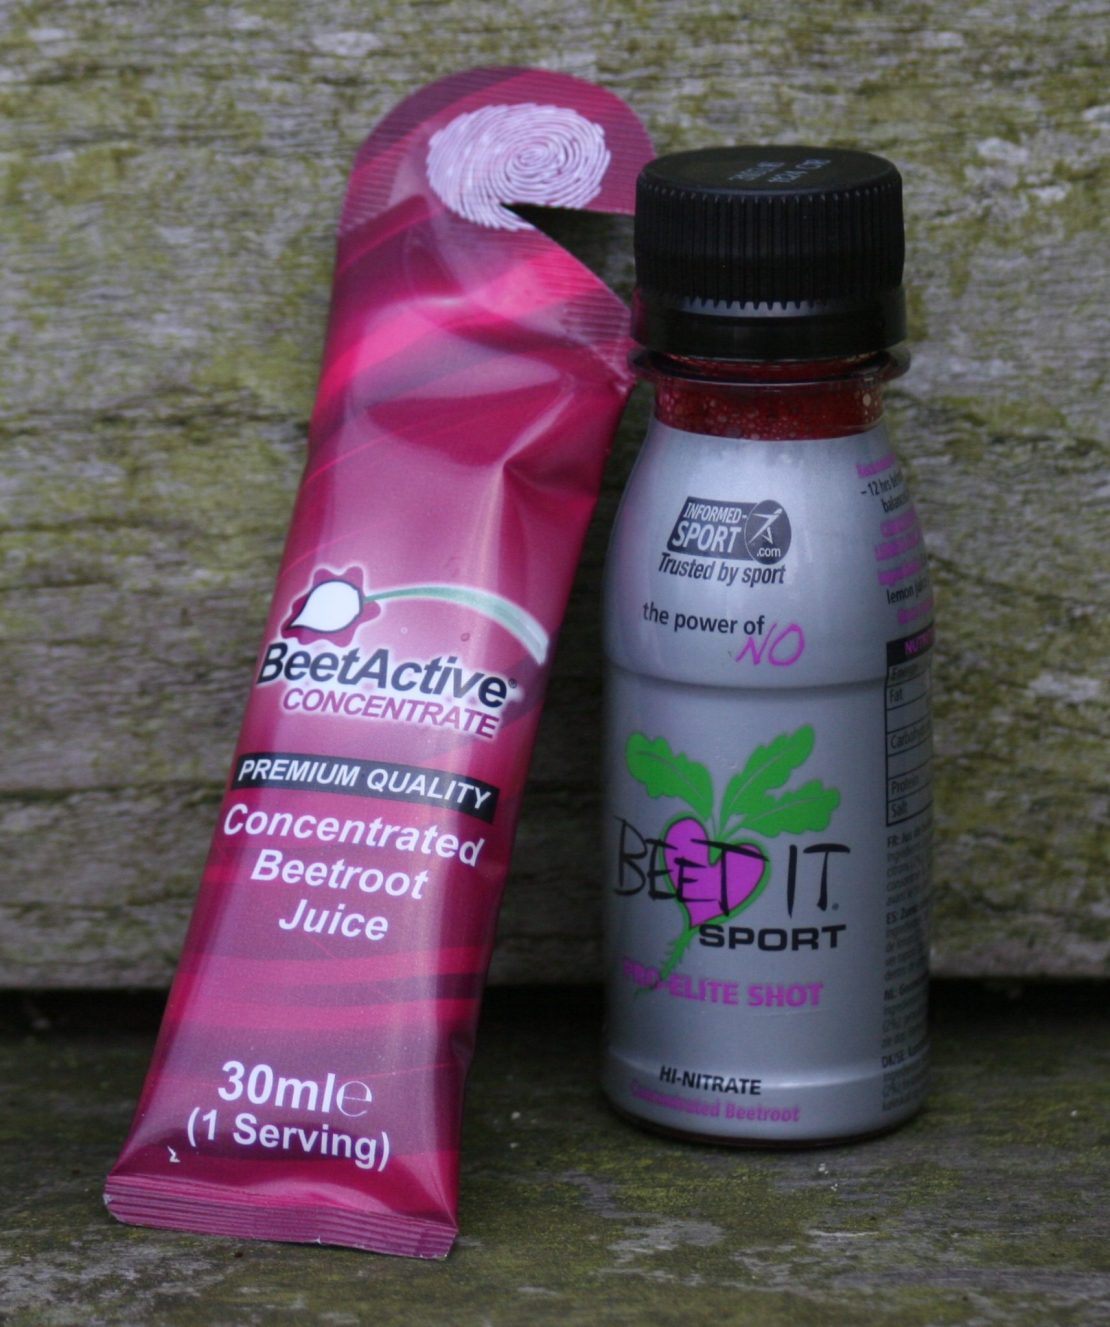 BeetActive Beetroot Juice & Beet-It